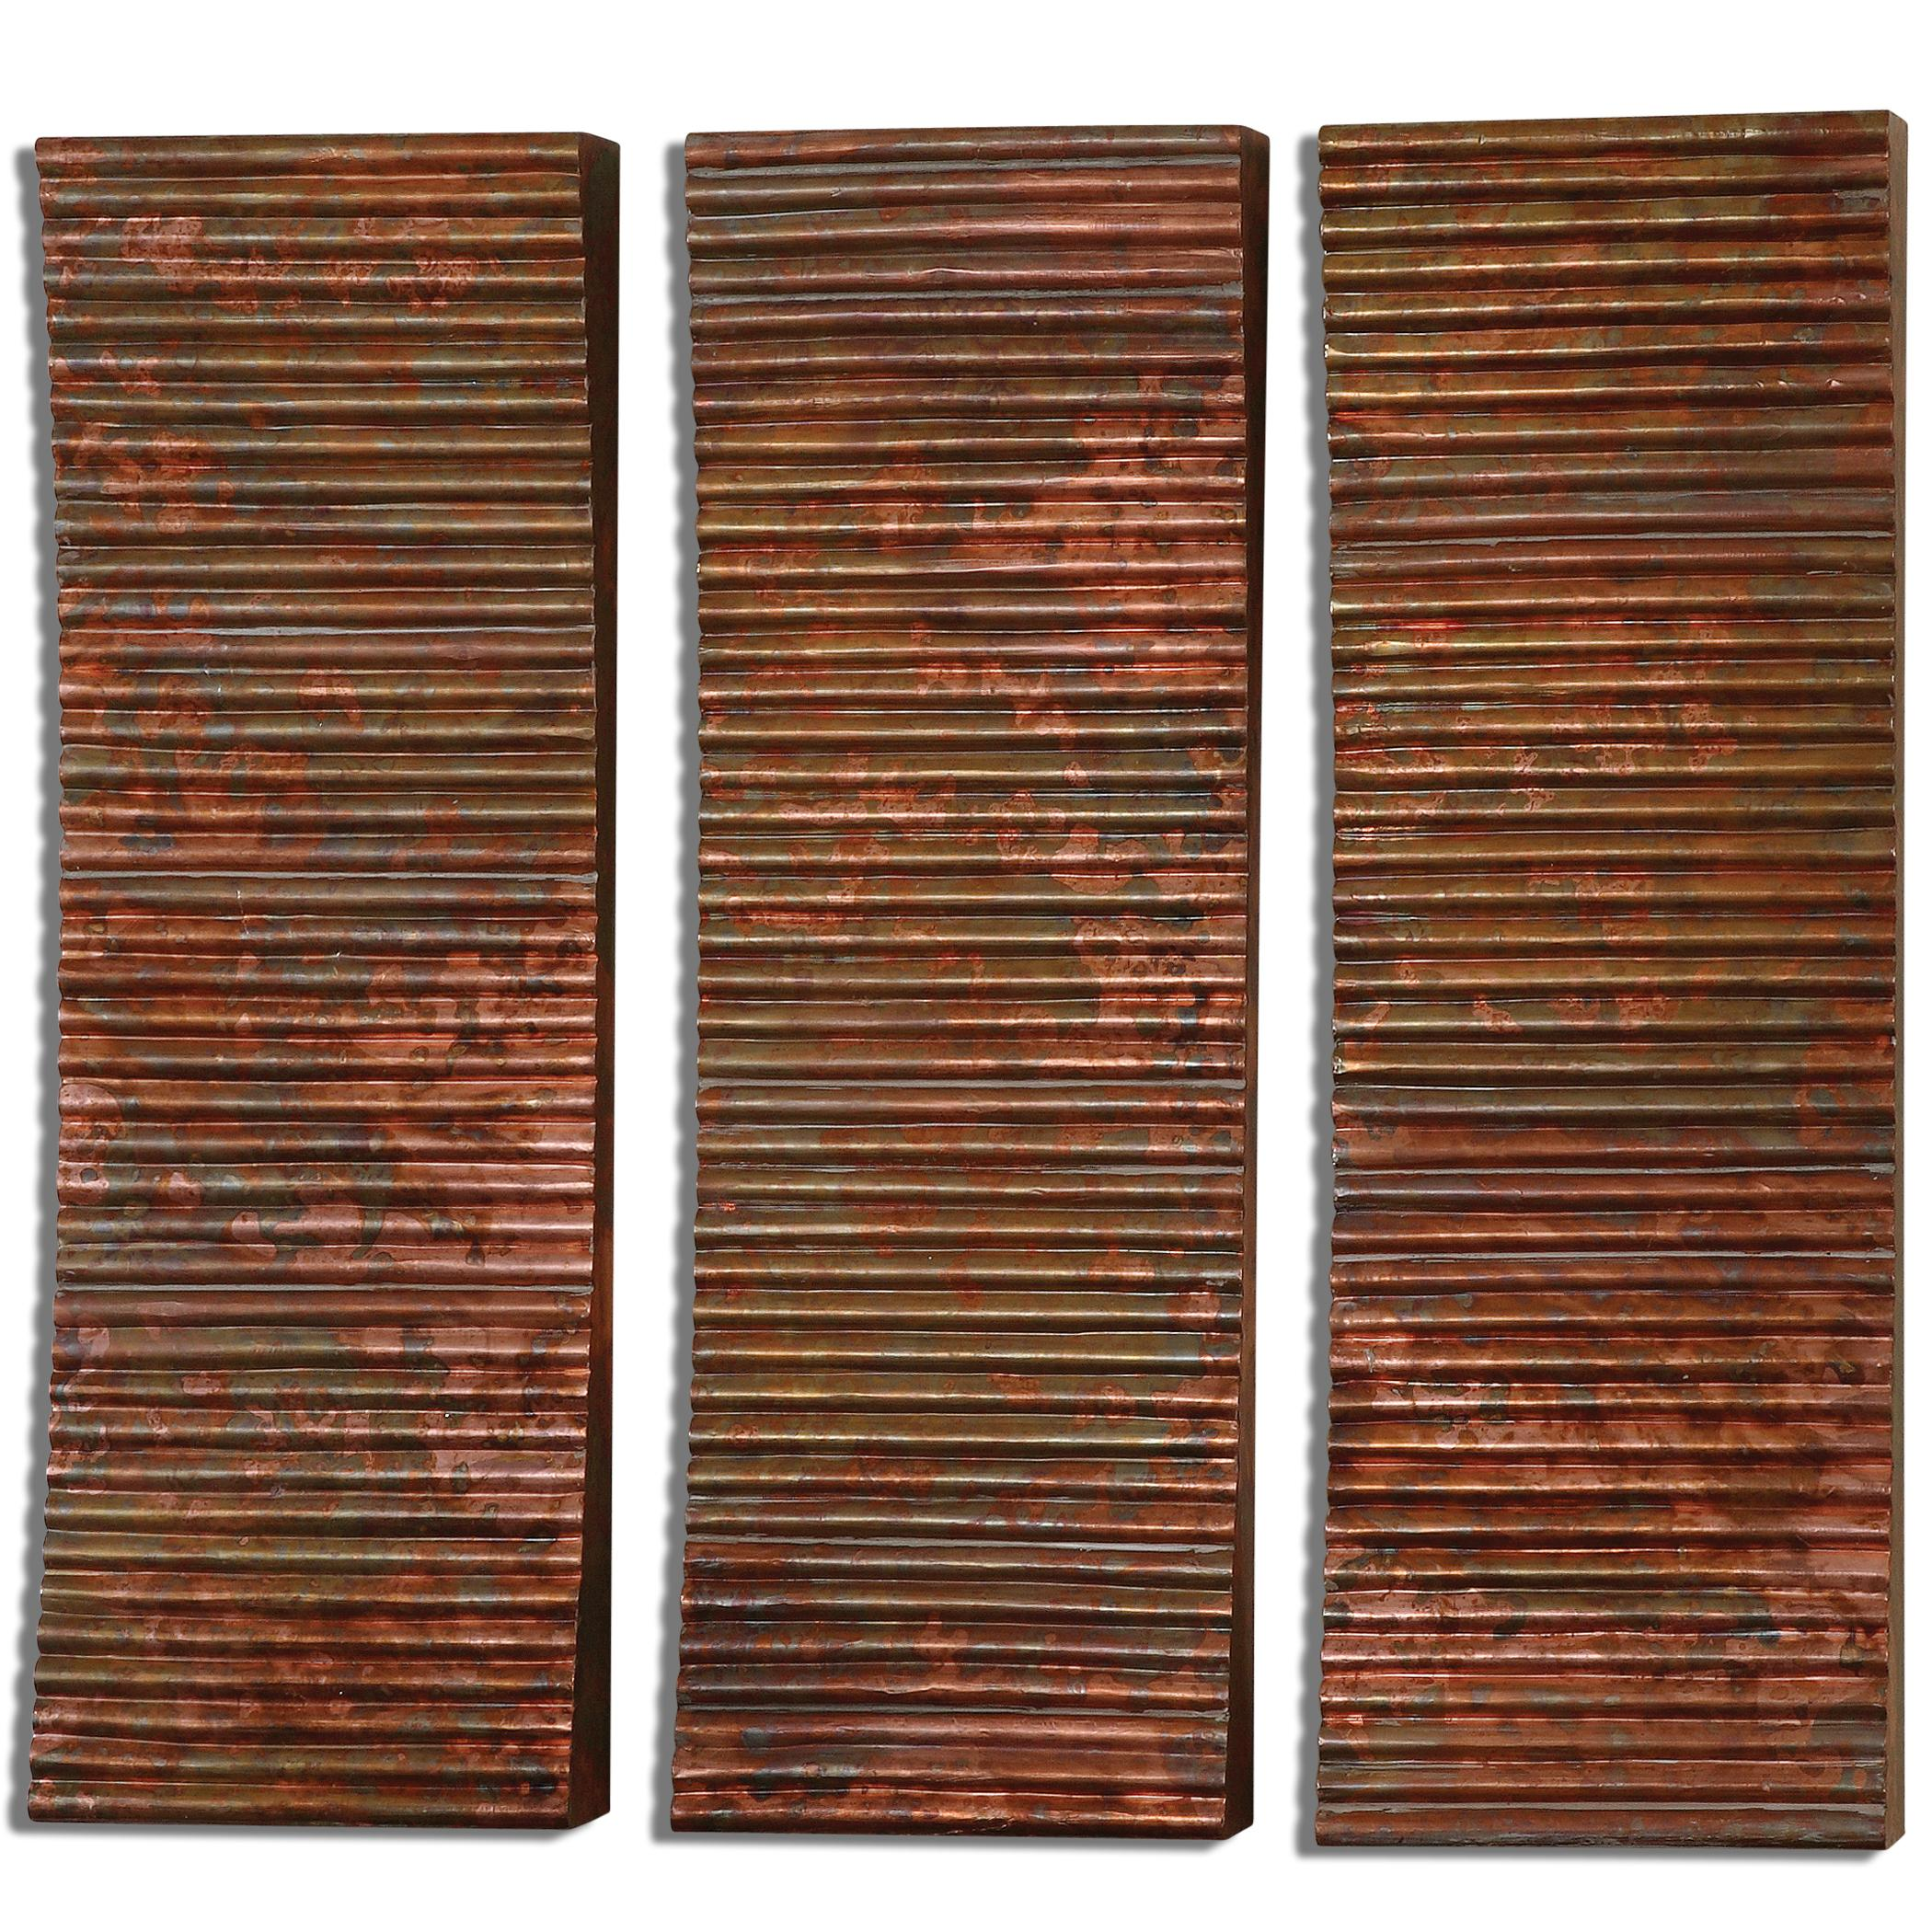 Uttermost Alternative Wall Decor Adara Copper Wall Art, Set of  3 - Item Number: 07064